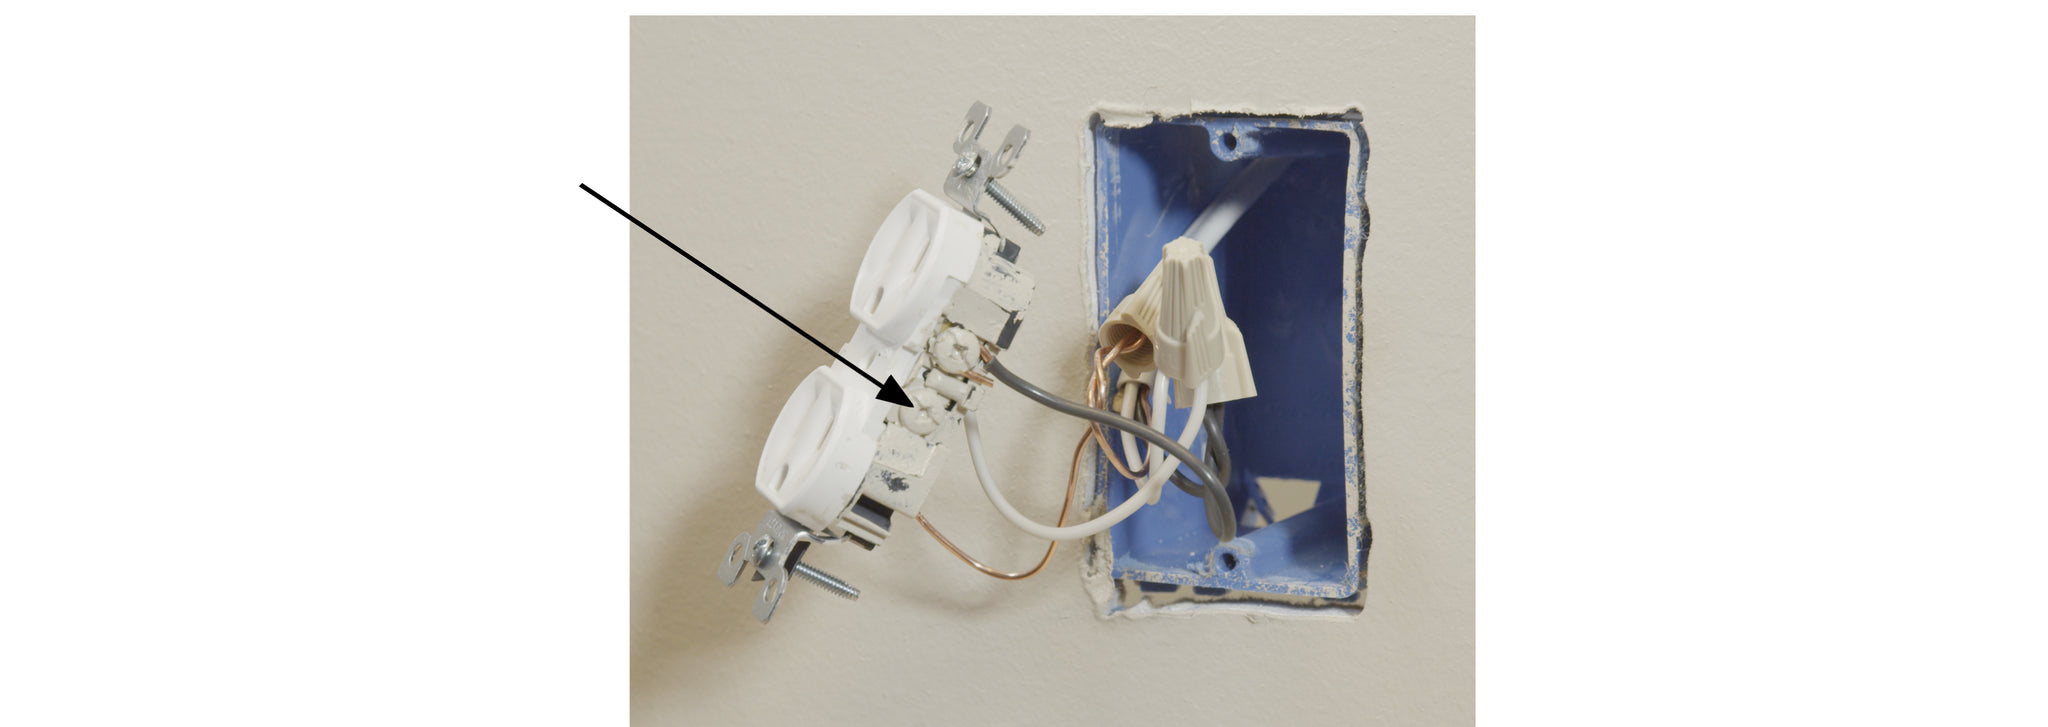 Install And Troubleshooting 1 Snappower How To Wire An Electrical Outlet Wiring Besides Duplex Step 6 Check See If The You Are Installing Your Guidelight On Is Controlled By A Light Switch